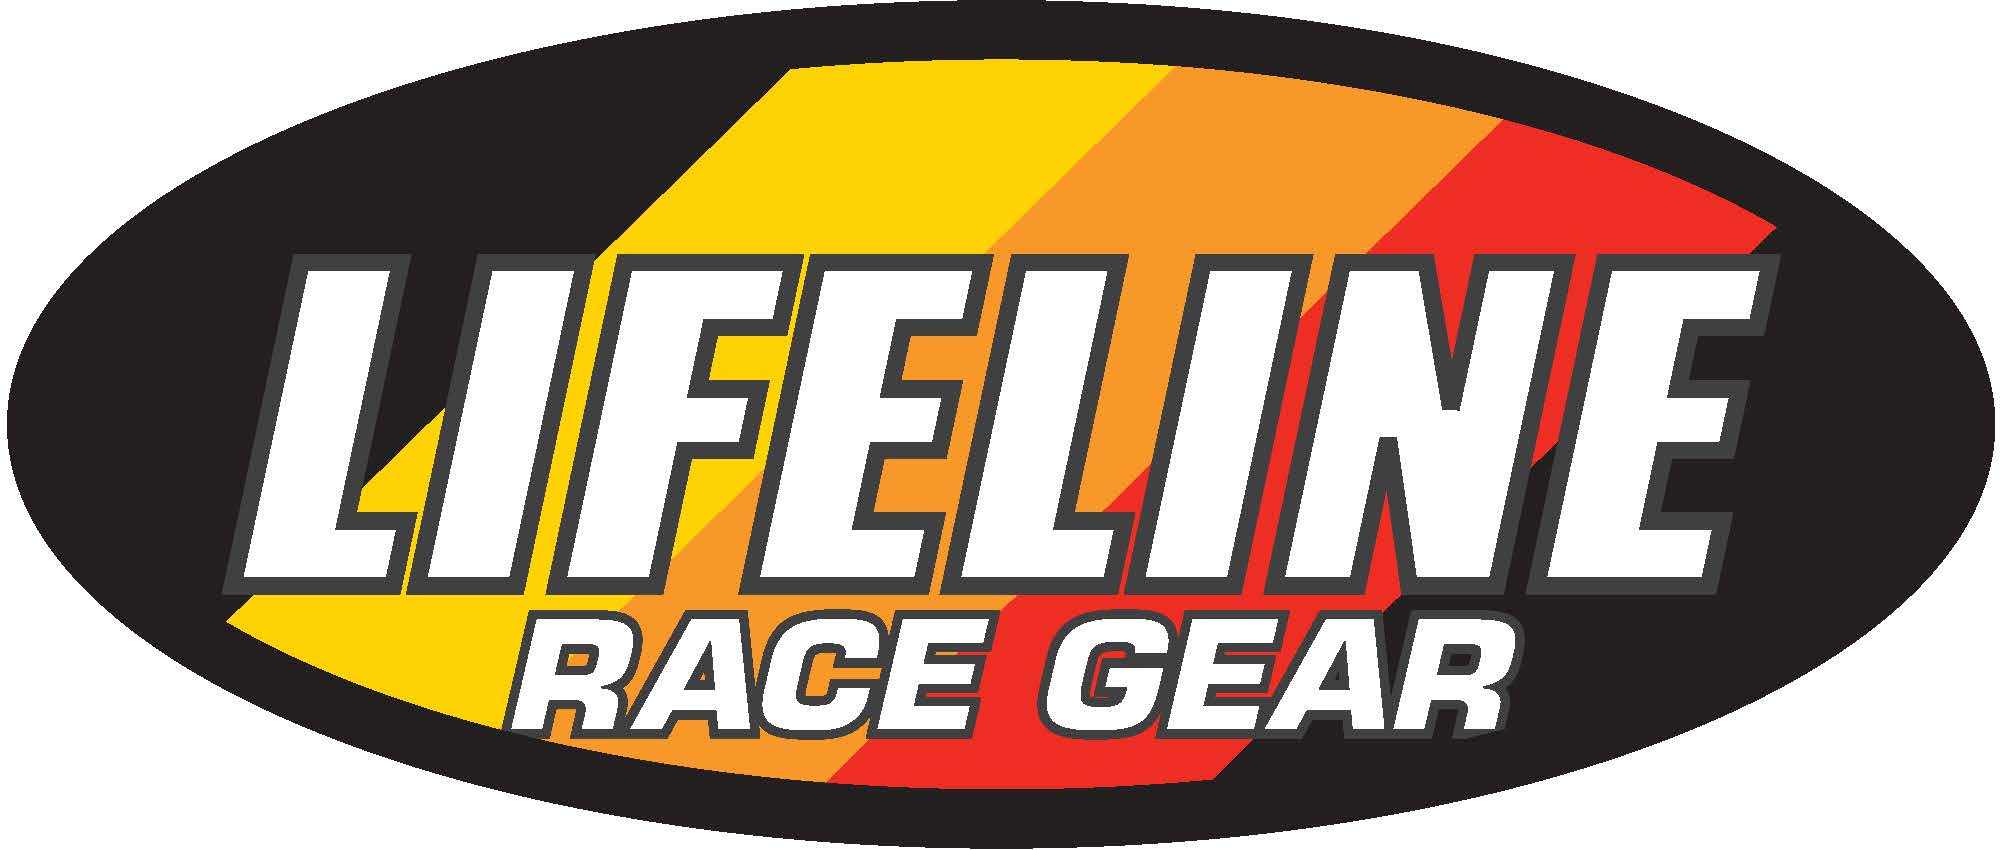 Lifeline Race Gear